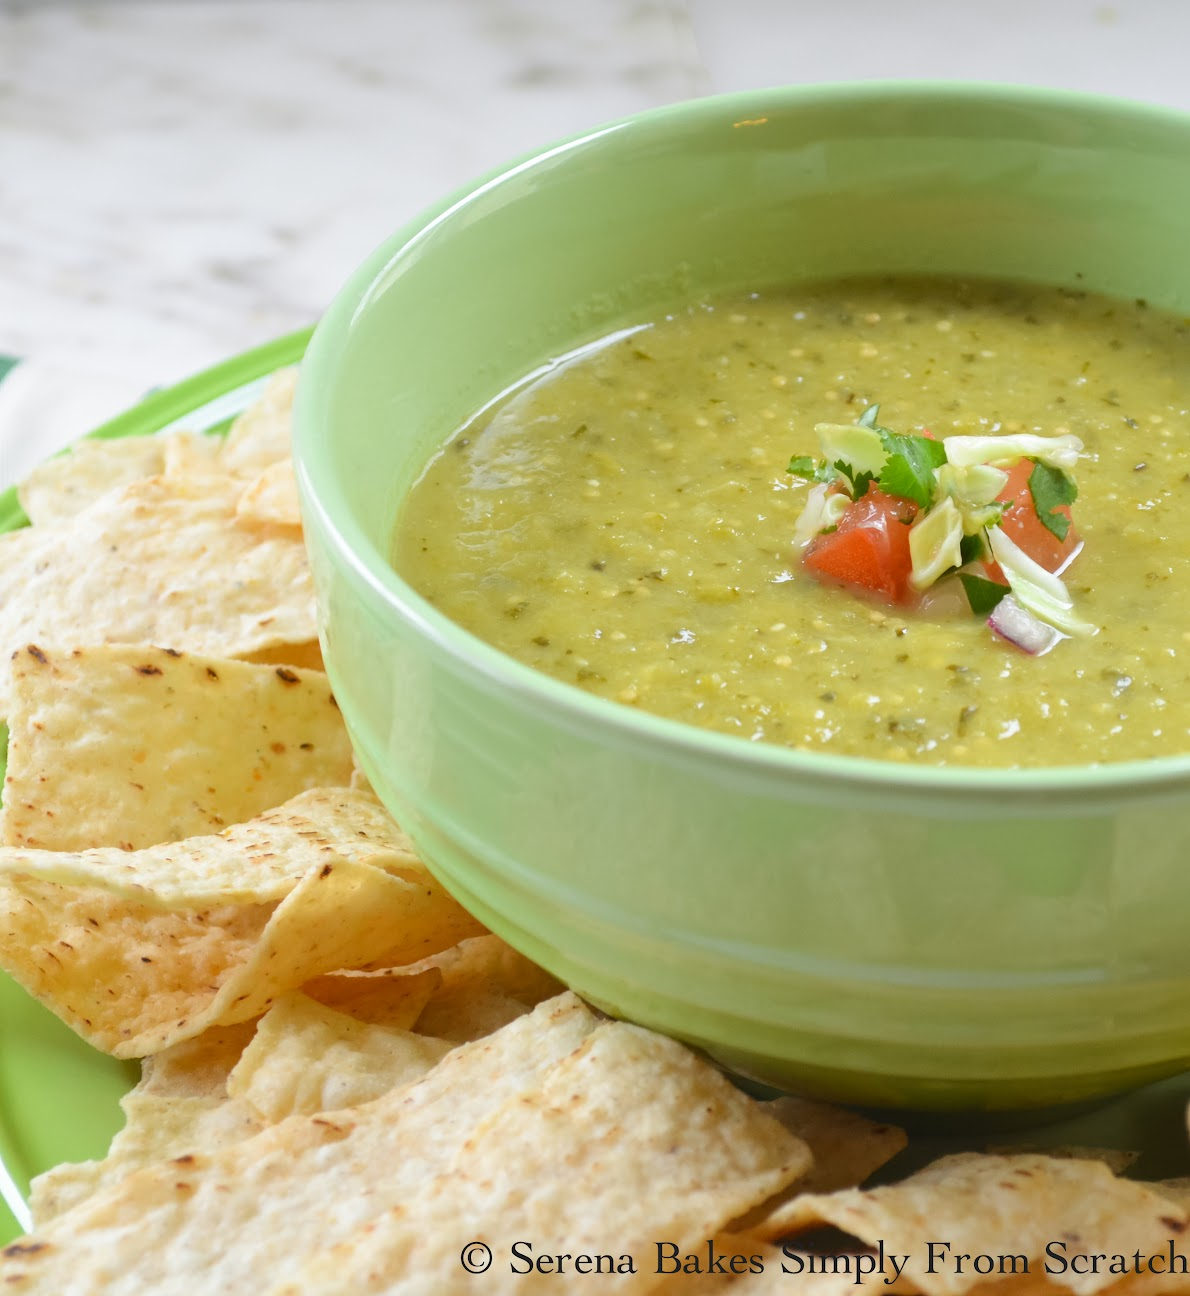 Salsa Verde is great with chips or to make Enchiladas Verde!